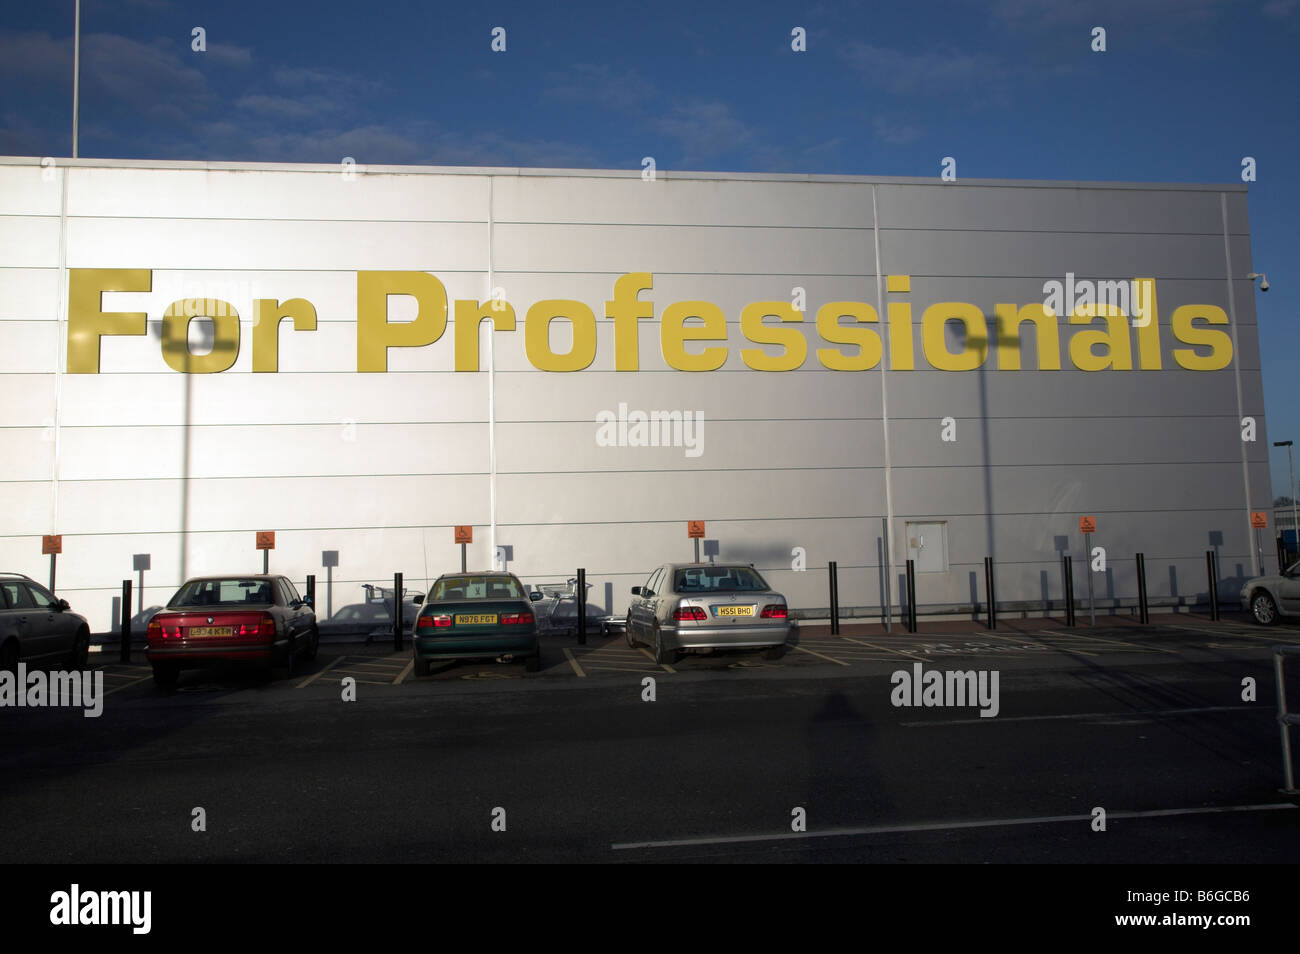 For Professionals sign Makro shop building and car park Ipswich Suffolk England - Stock Image